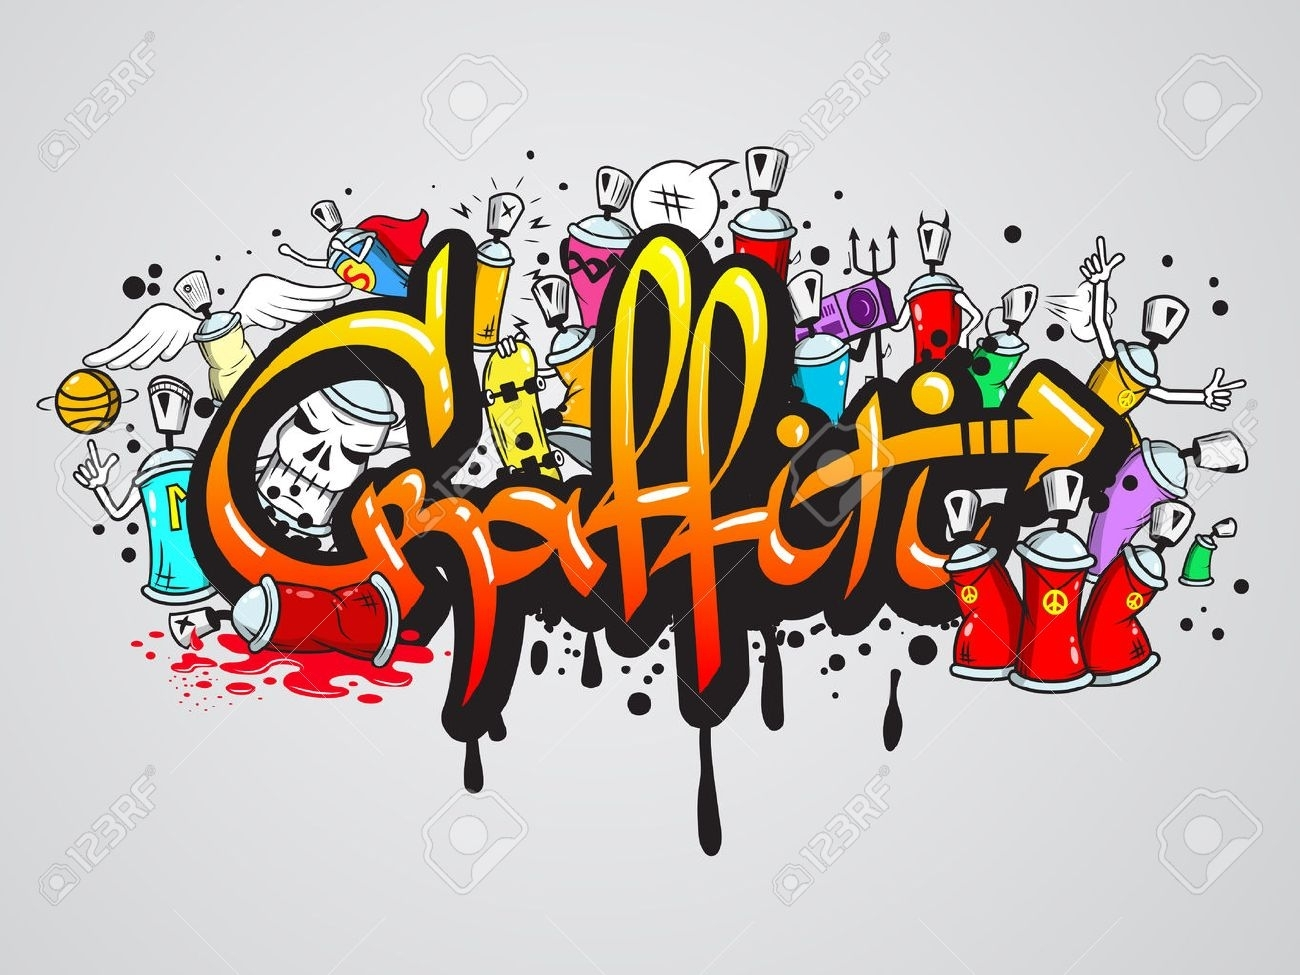 Decorative Graffiti Art Spray Paint Letters And Characters Throughout Current Abstract Graffiti Wall Art (View 9 of 20)